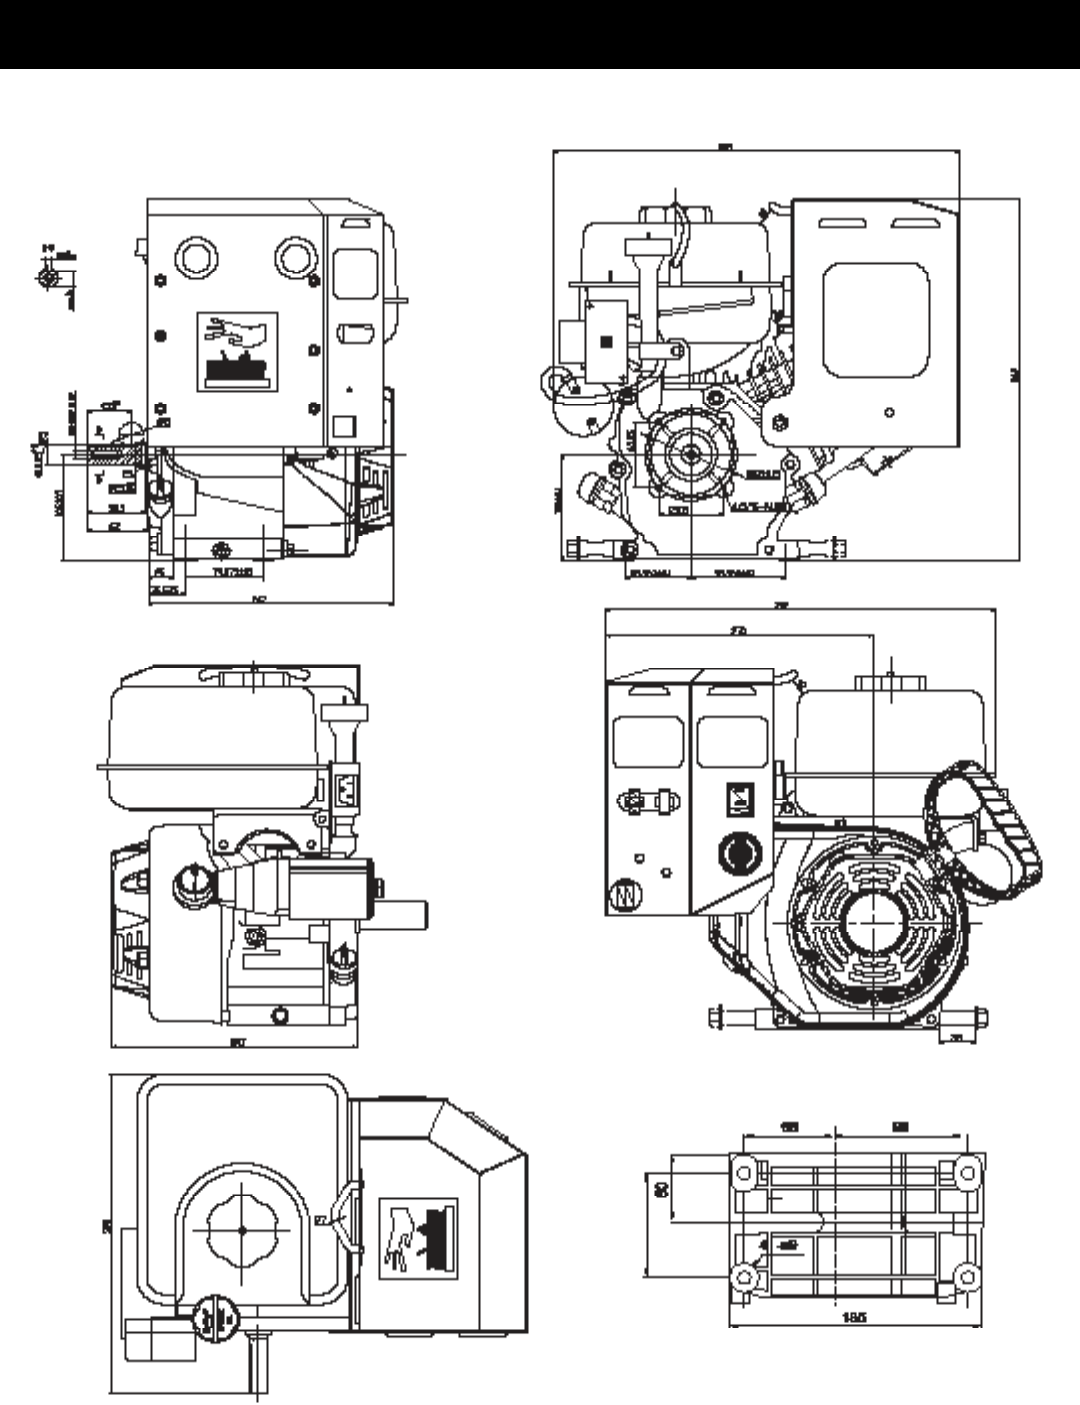 548525 3 red lion lct engine serivce manual  usermanual.wiki